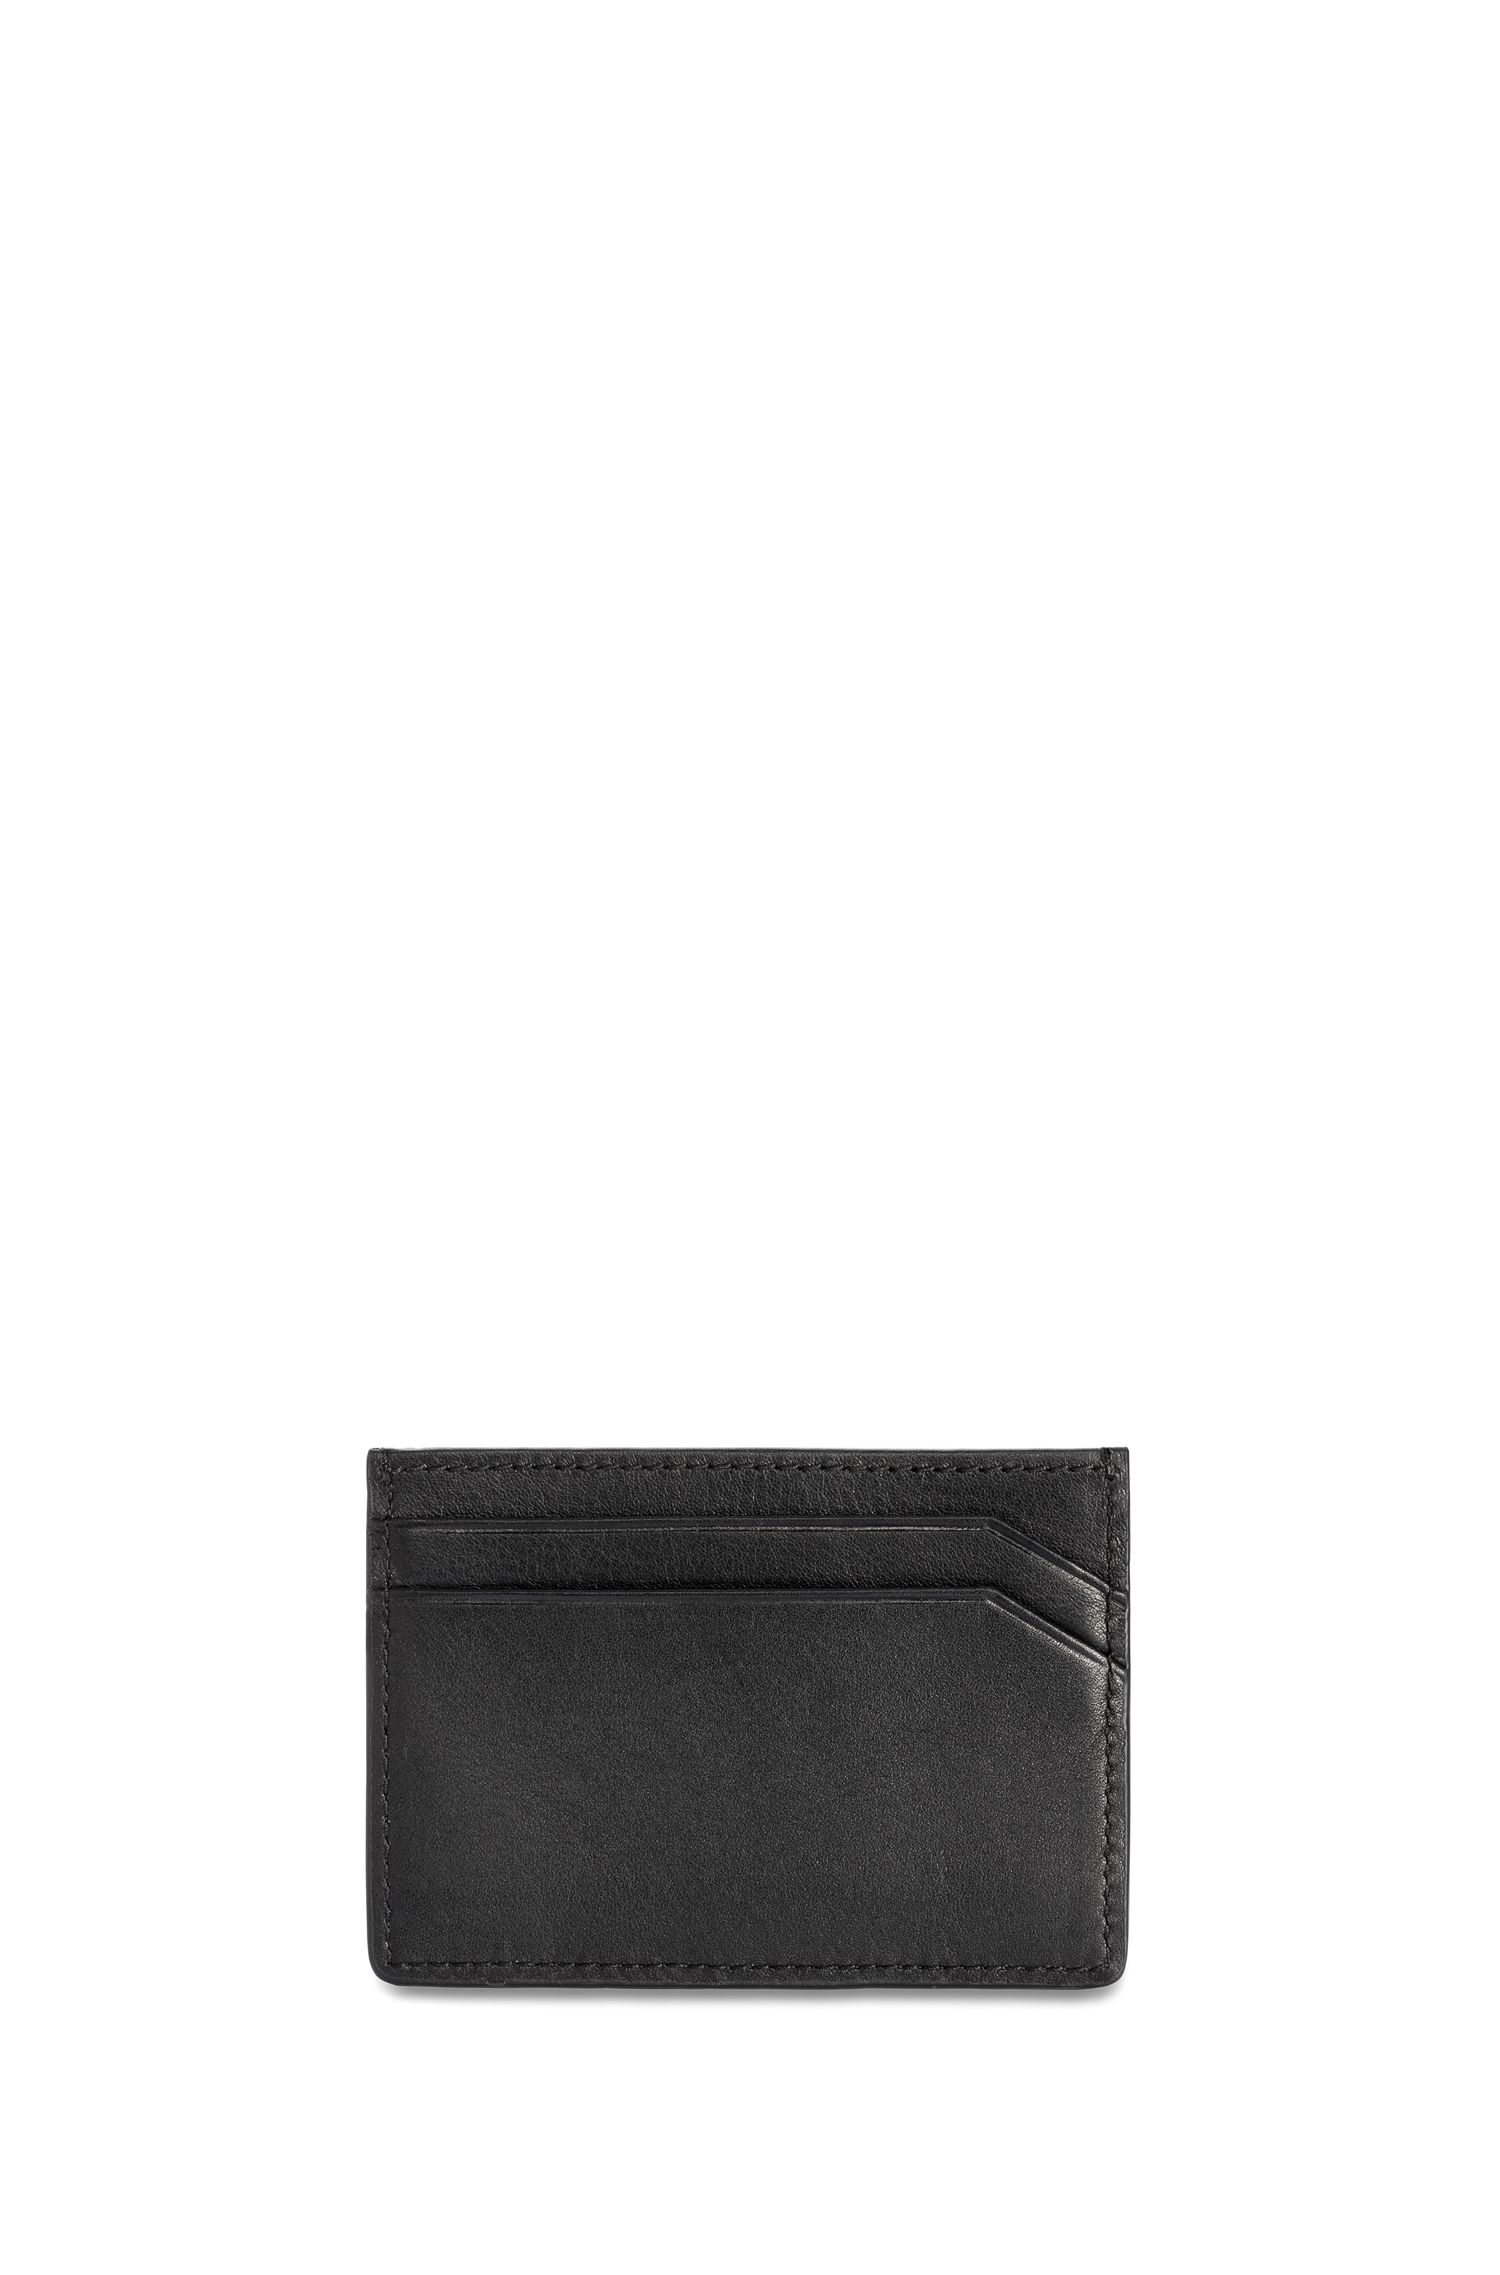 Leather Cardholder | Mercury S Card